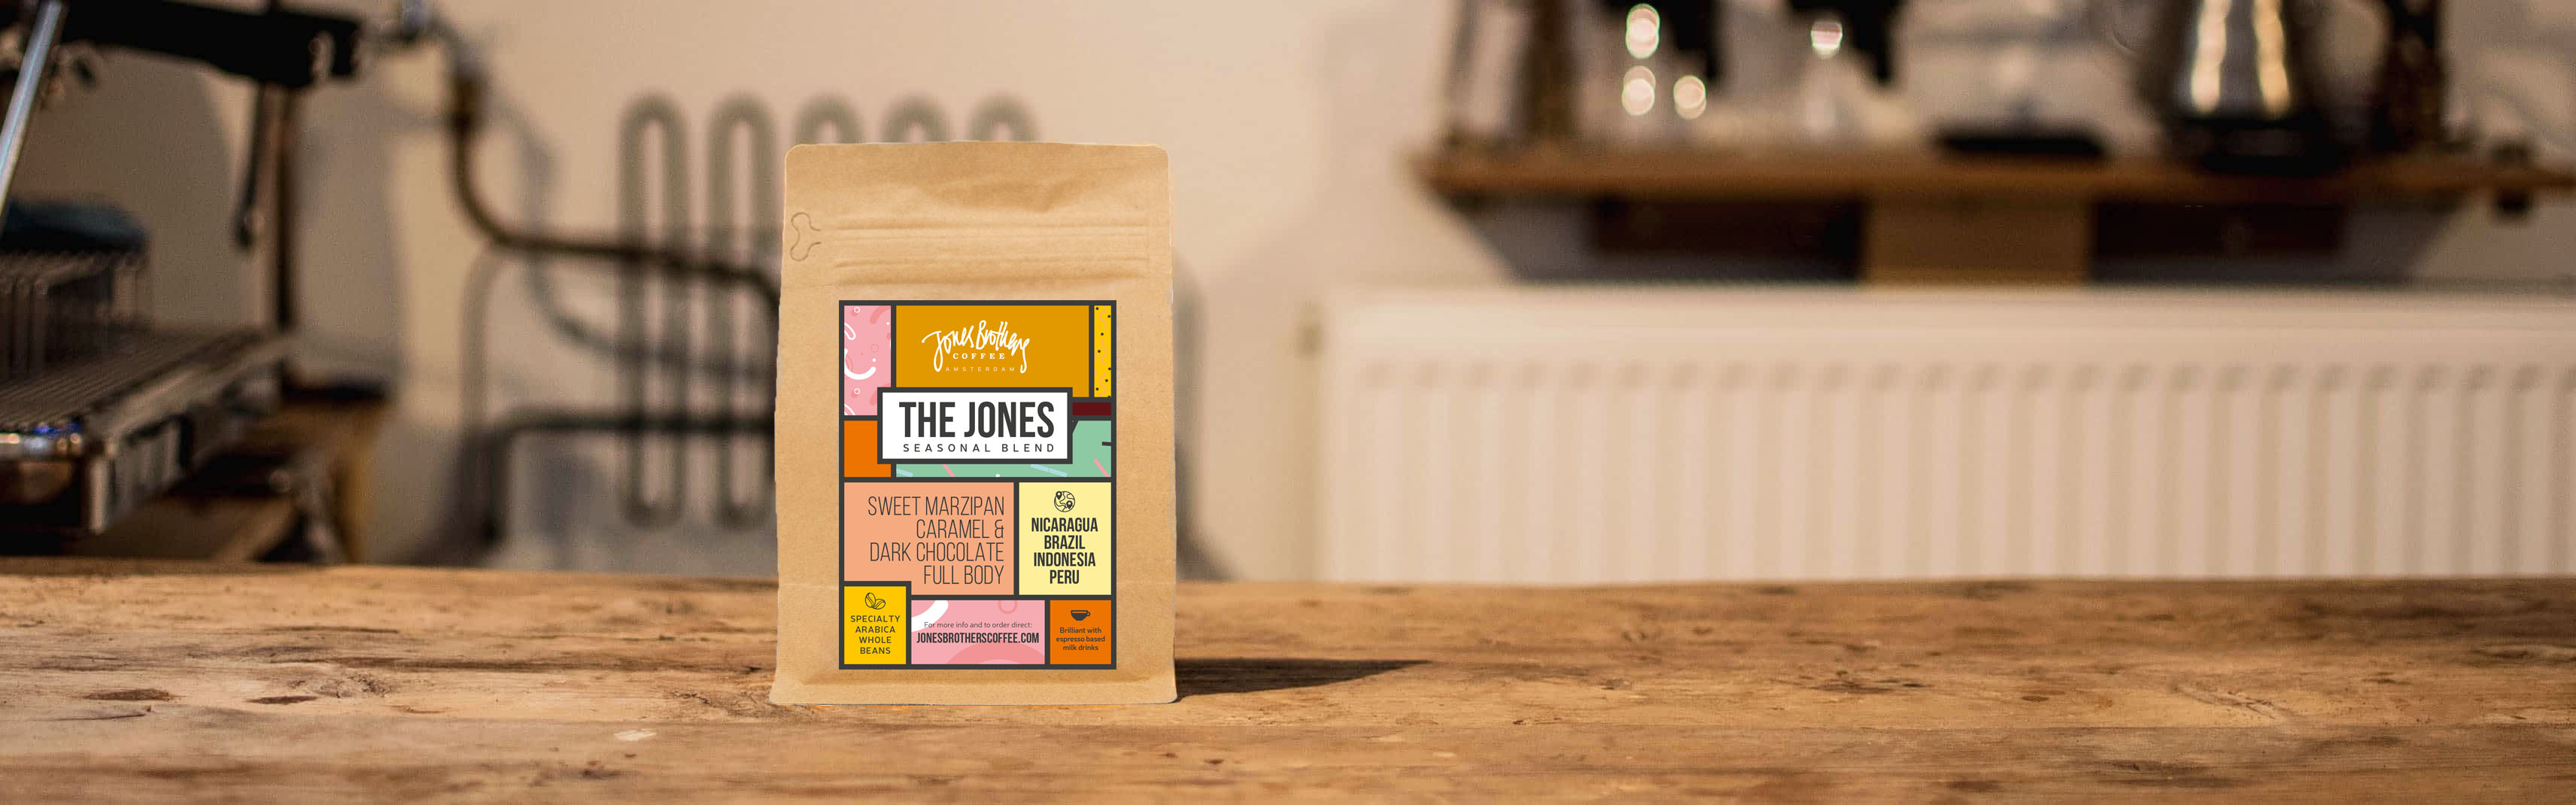 The Jones Blend